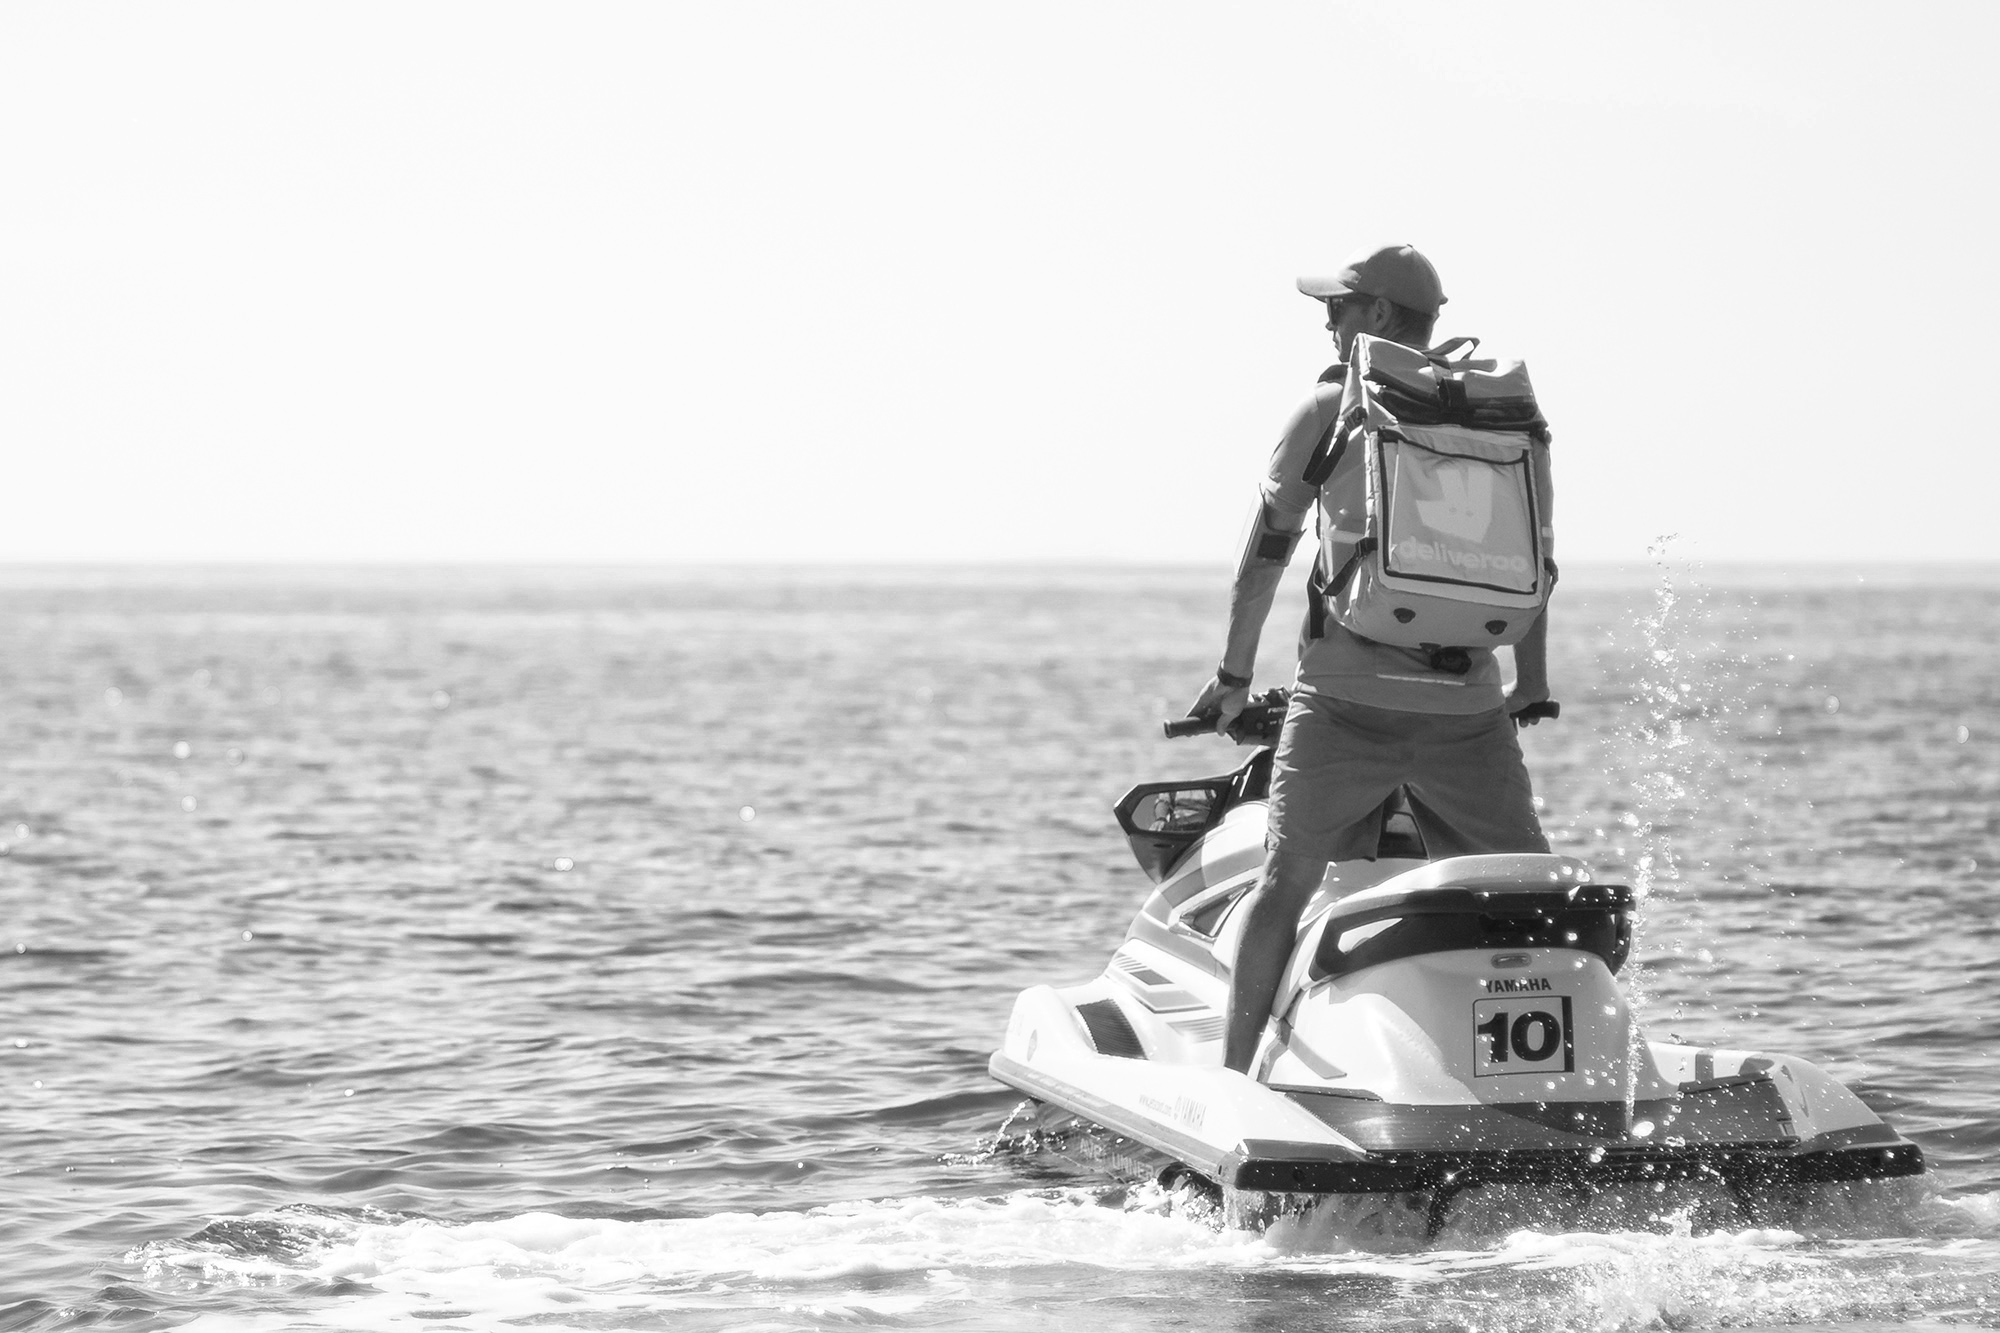 Brit Co Deliveroo To Use Jet Skis To Deliver To Boats